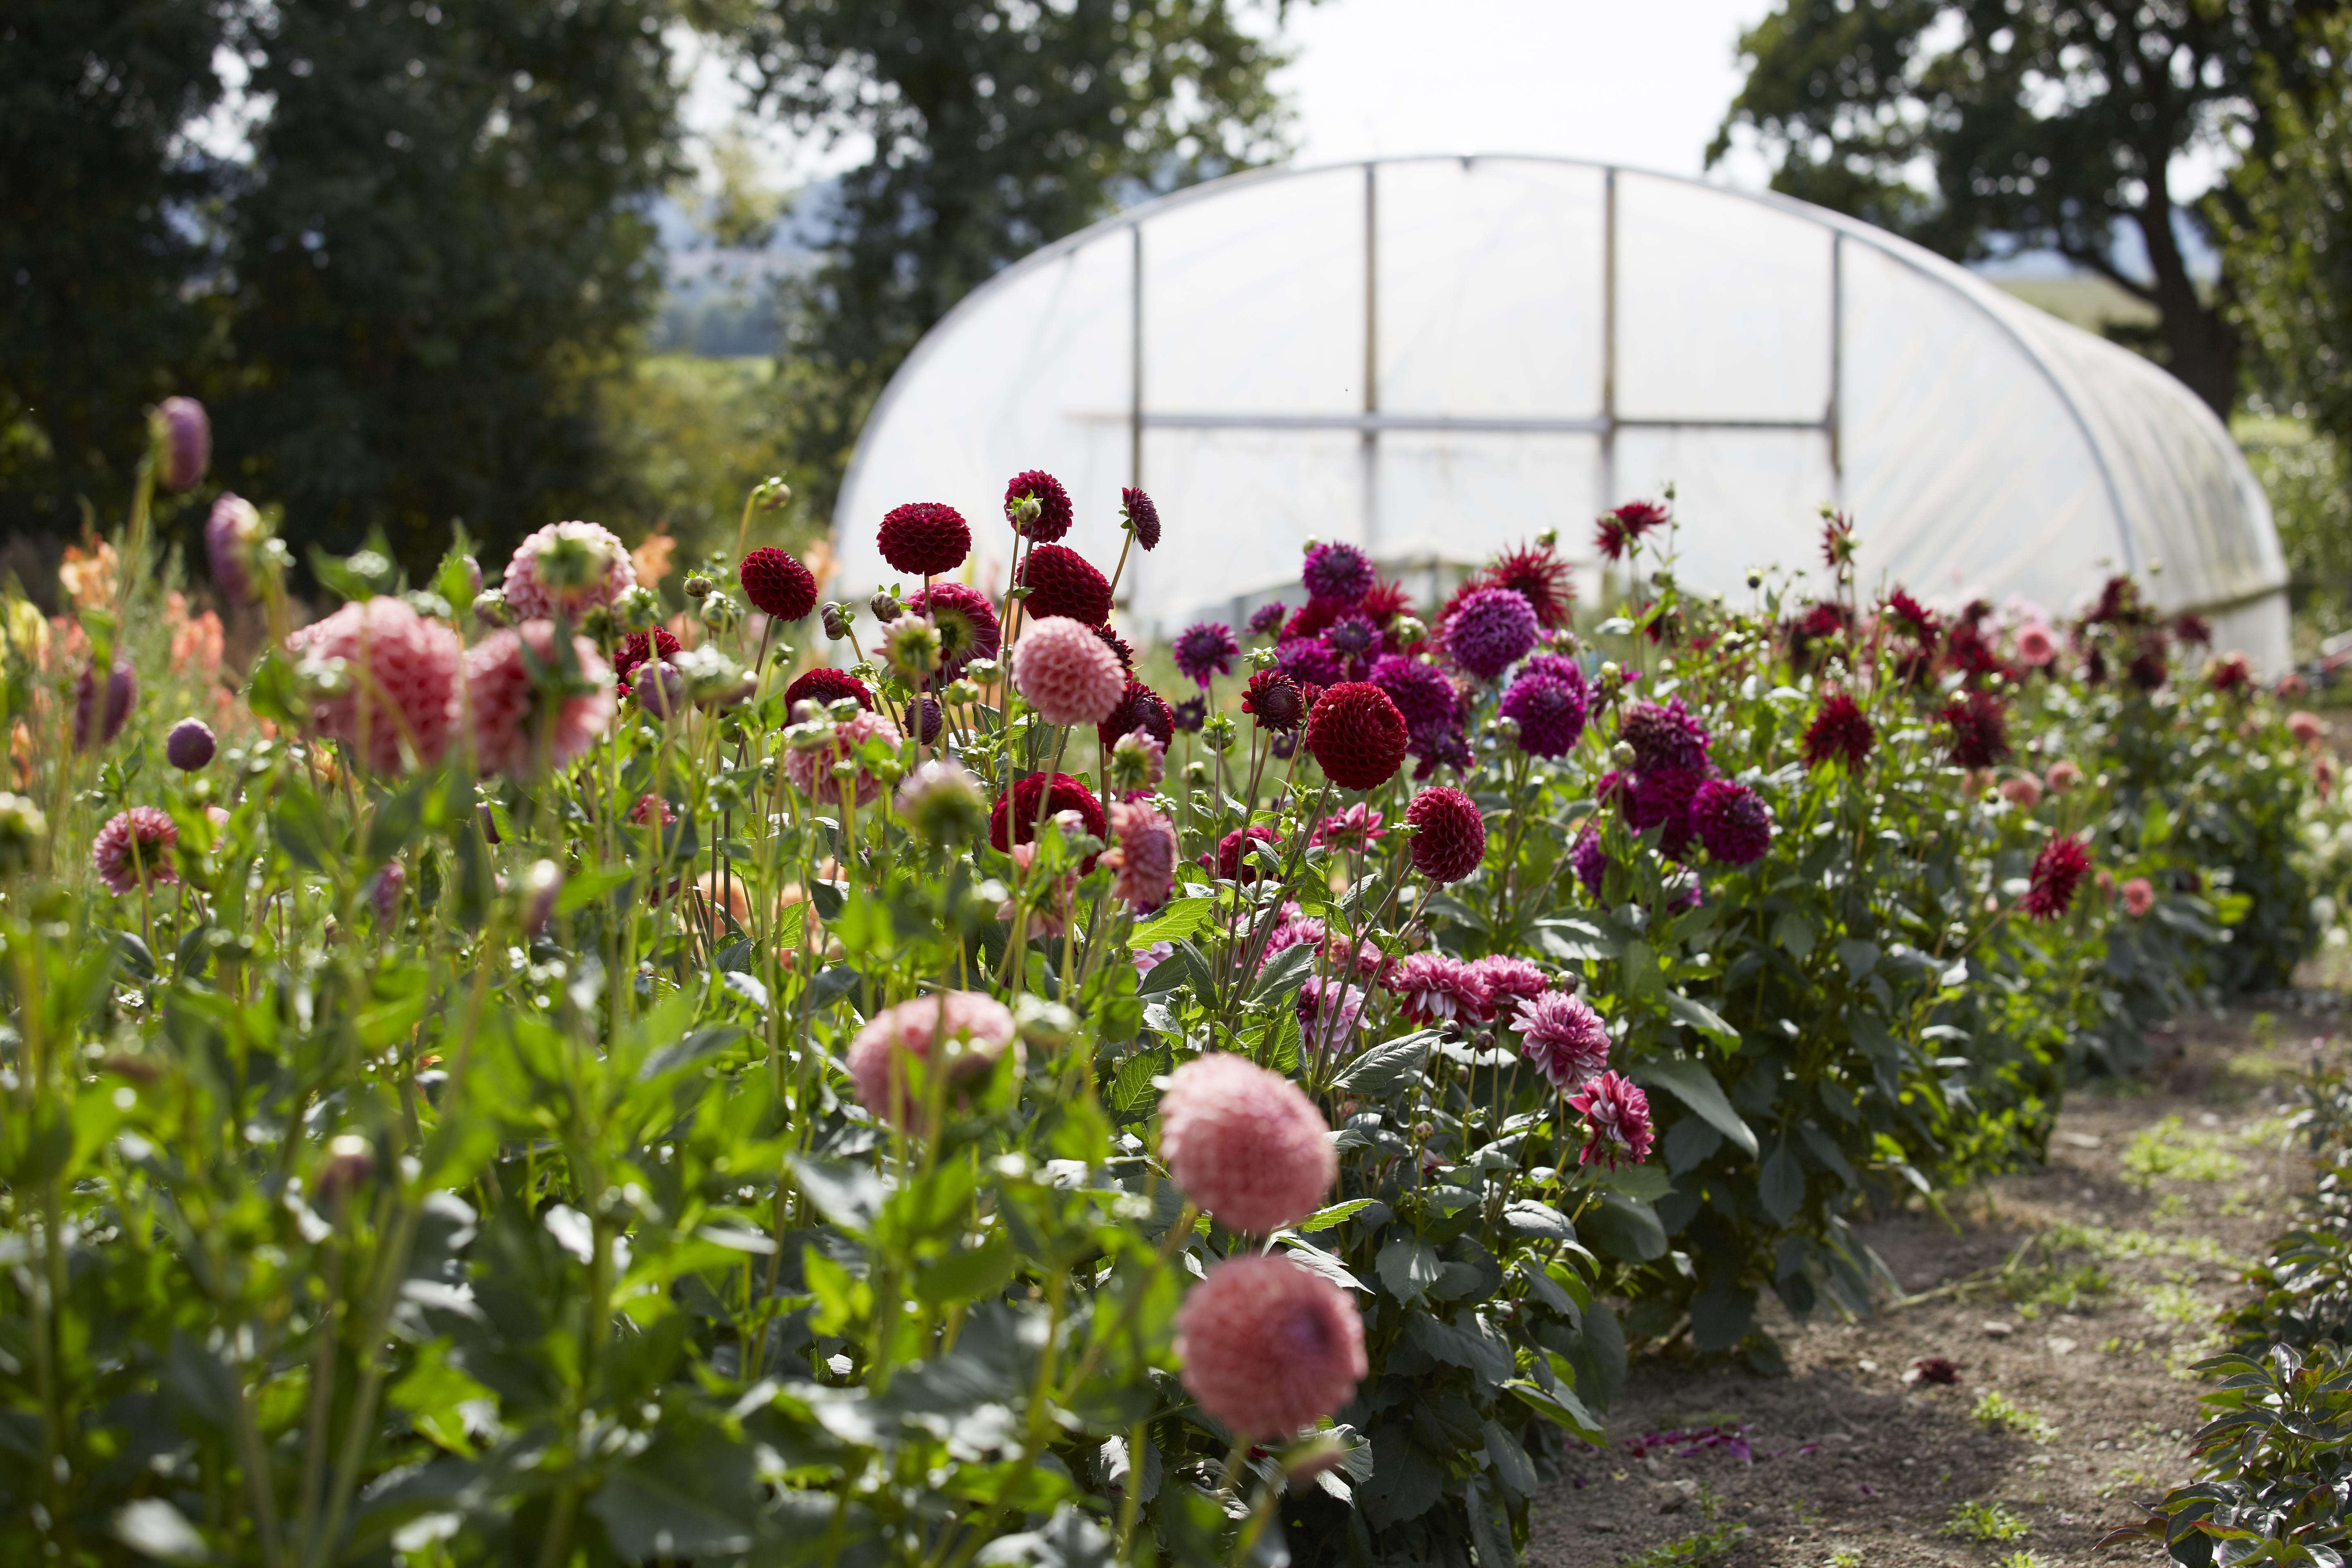 Wild bunch in the studio with floral designer tammy hall in wild bunch in the studio with floral designer tammy hall in shropshire gardenista izmirmasajfo